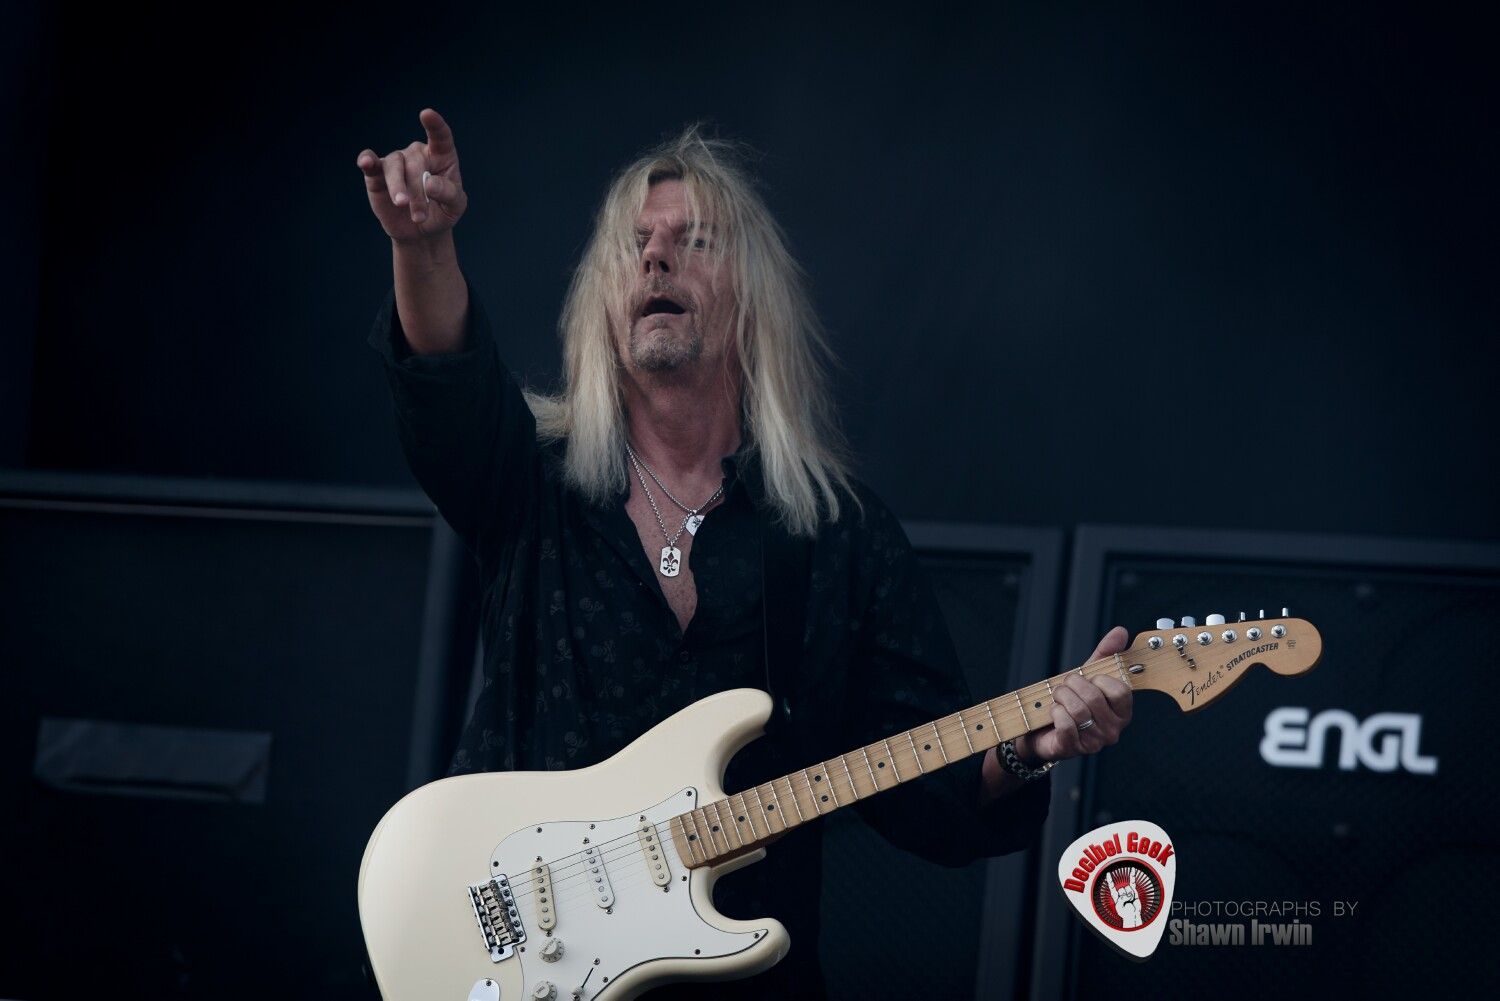 Axel Rudi Pell #1-Sweden Rock 2019-Shawn Irwin